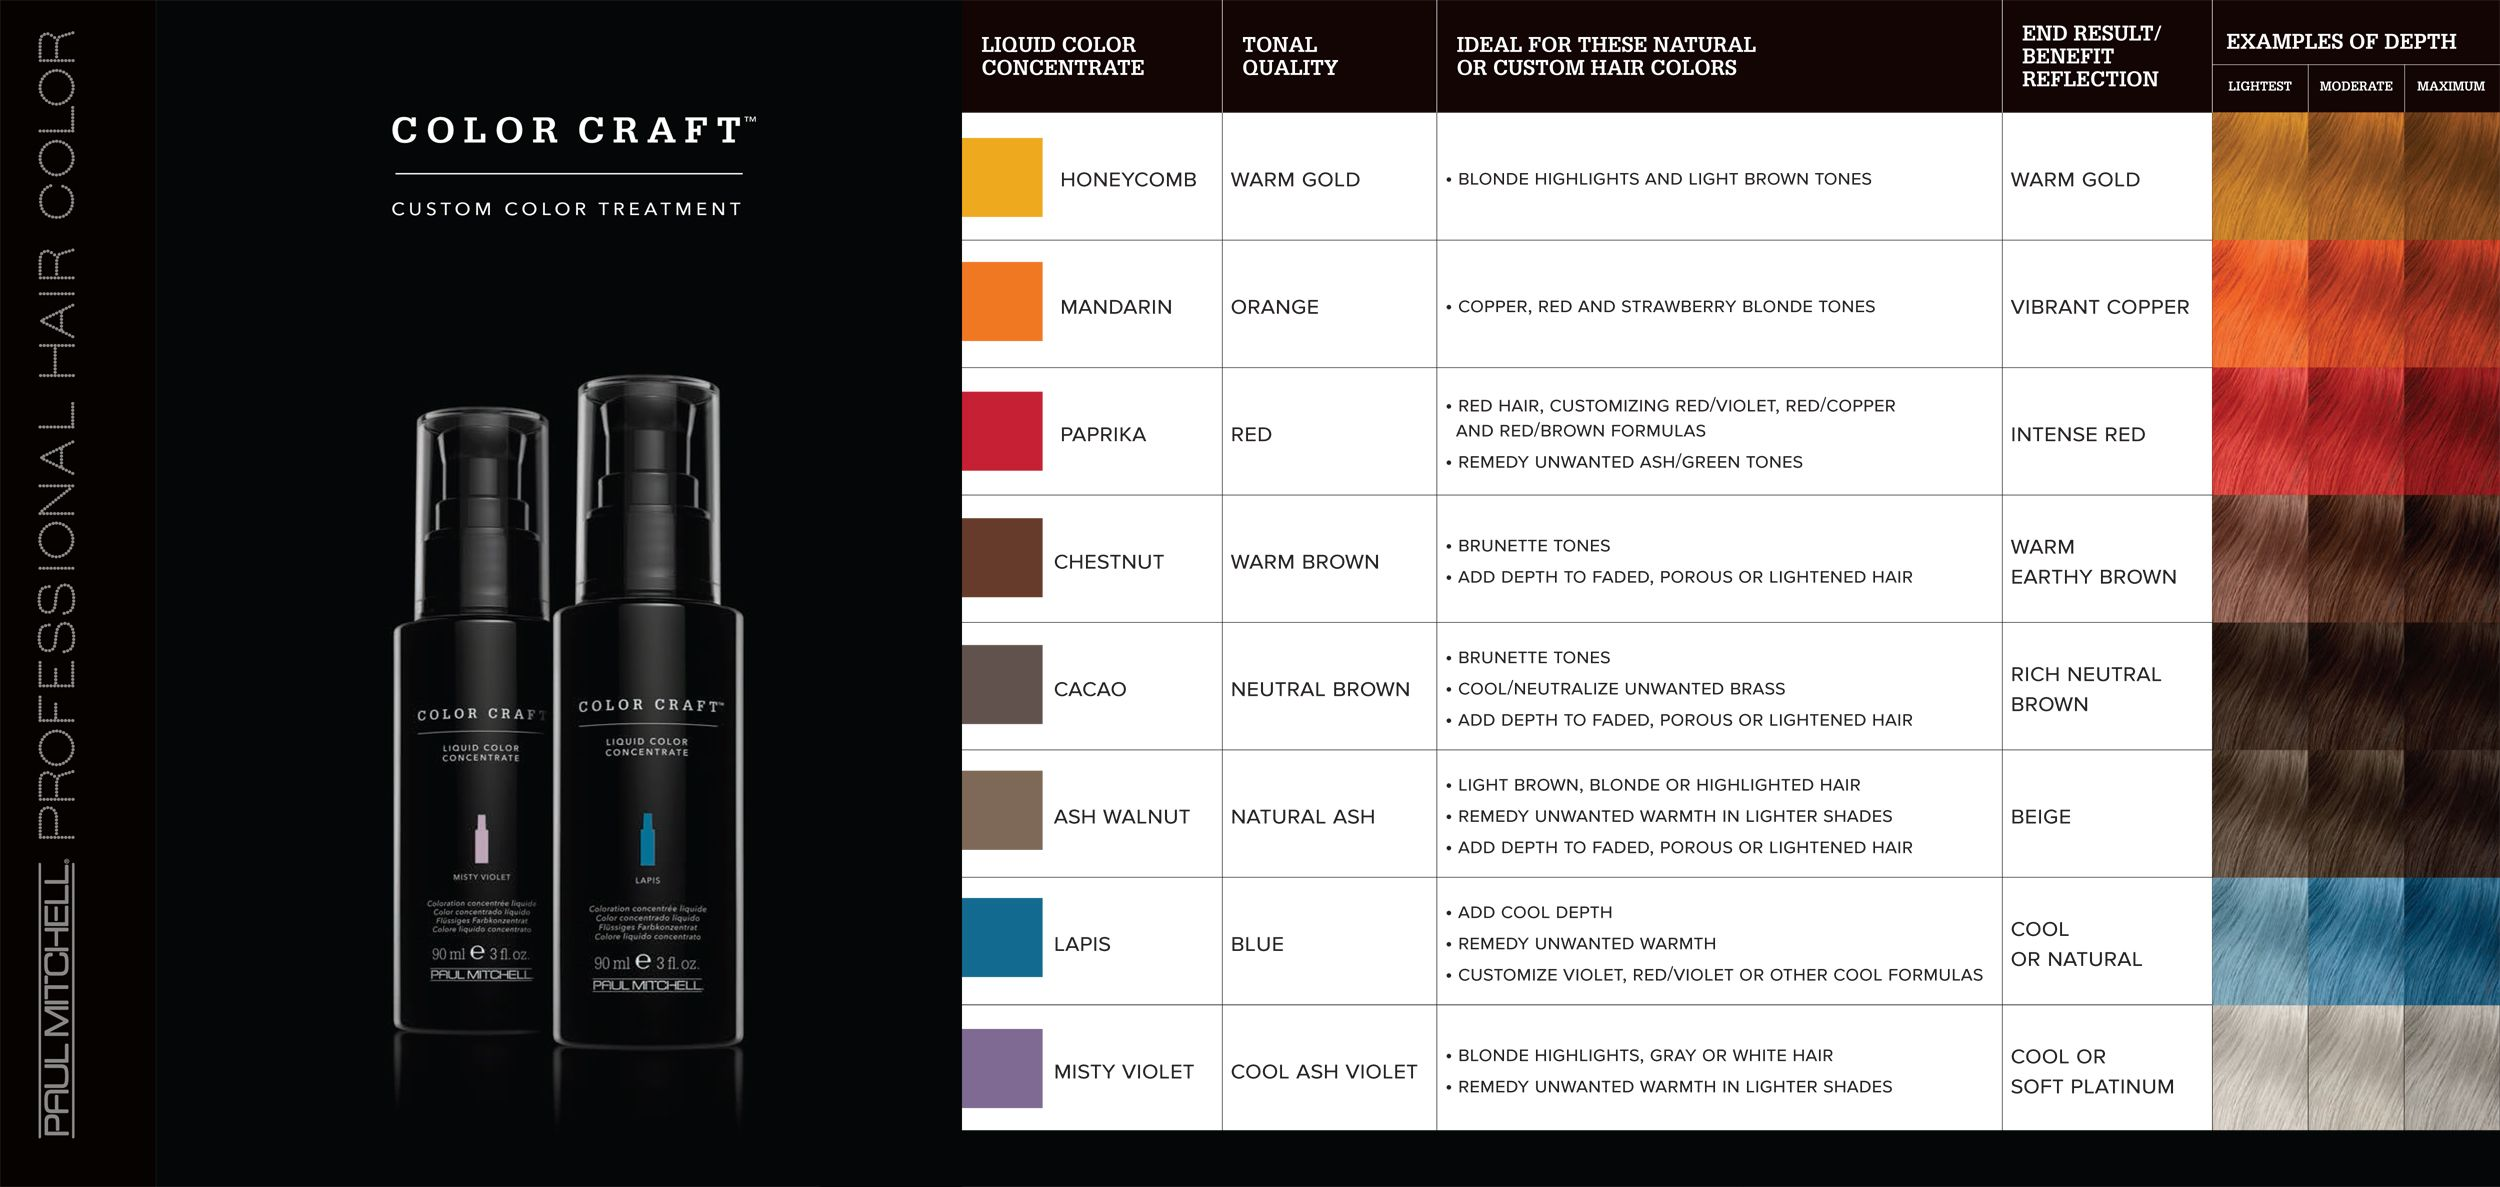 Paul Mitchell Color Craft Color Swatch Pmts Jz Lookbook In 2018